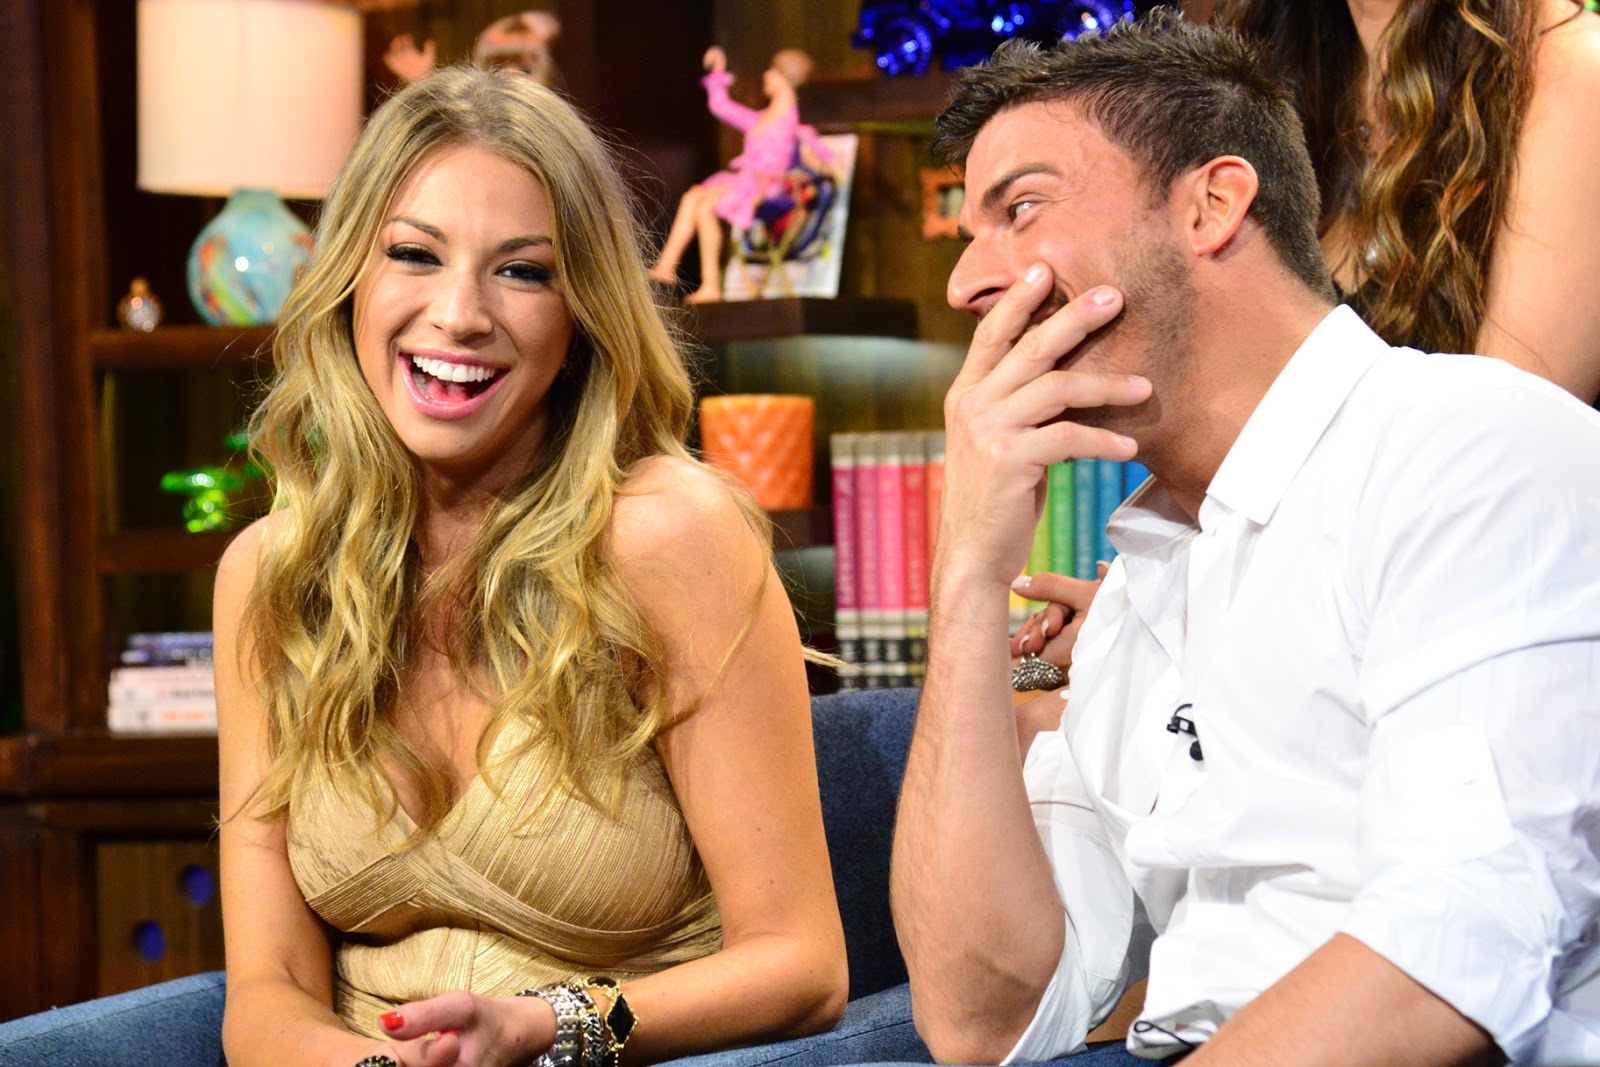 Who is stassi dating now